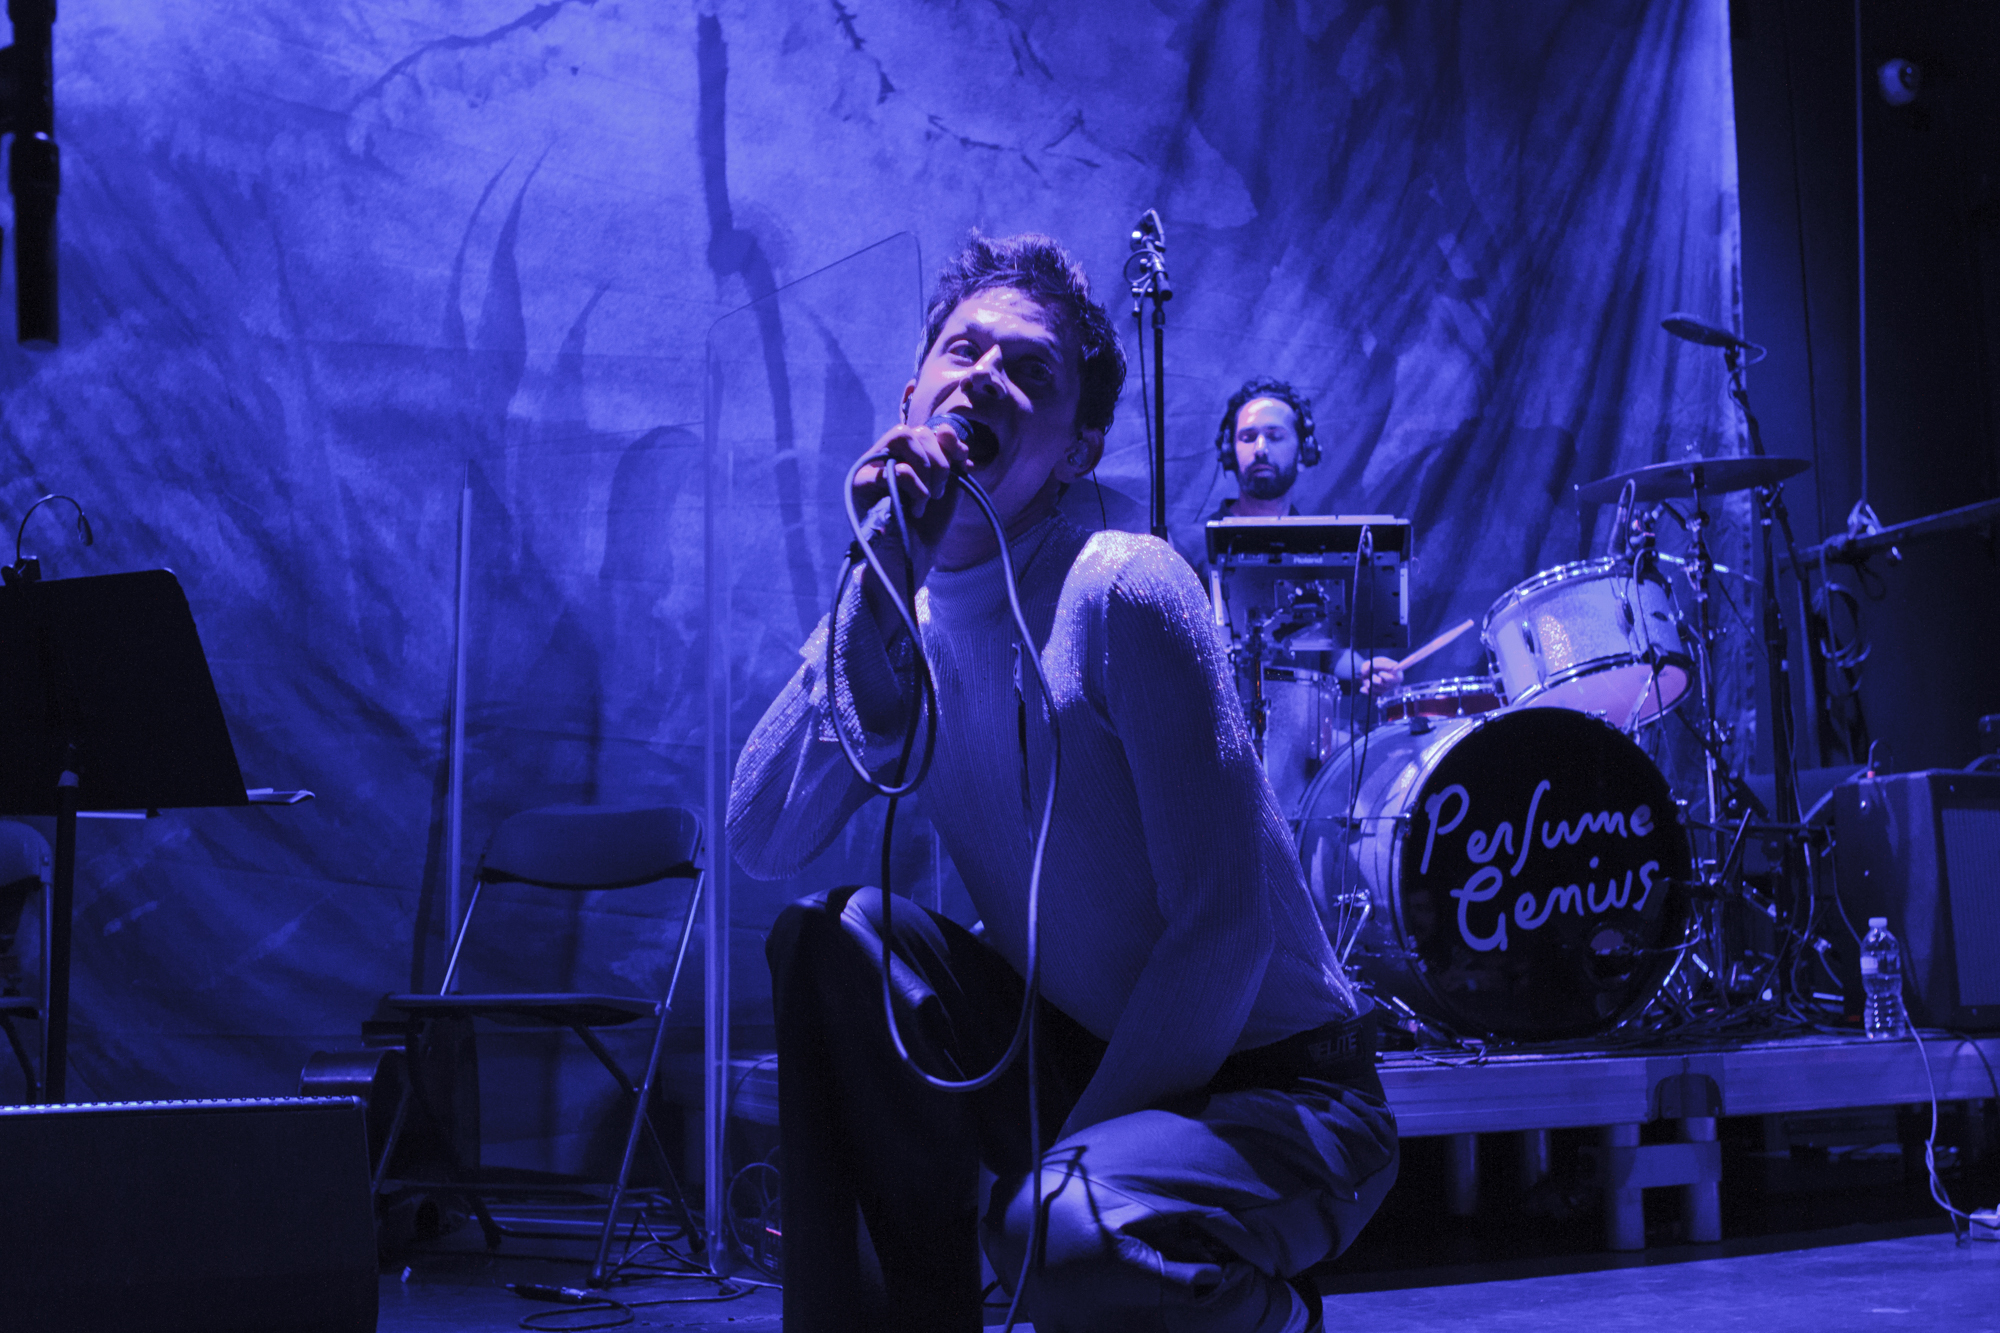 Perfume Genius play at Bowery Ballroom in New York, New York on Dec. 11, 2017. (© Michael Katzif - Do not use or republish without prior consent.)